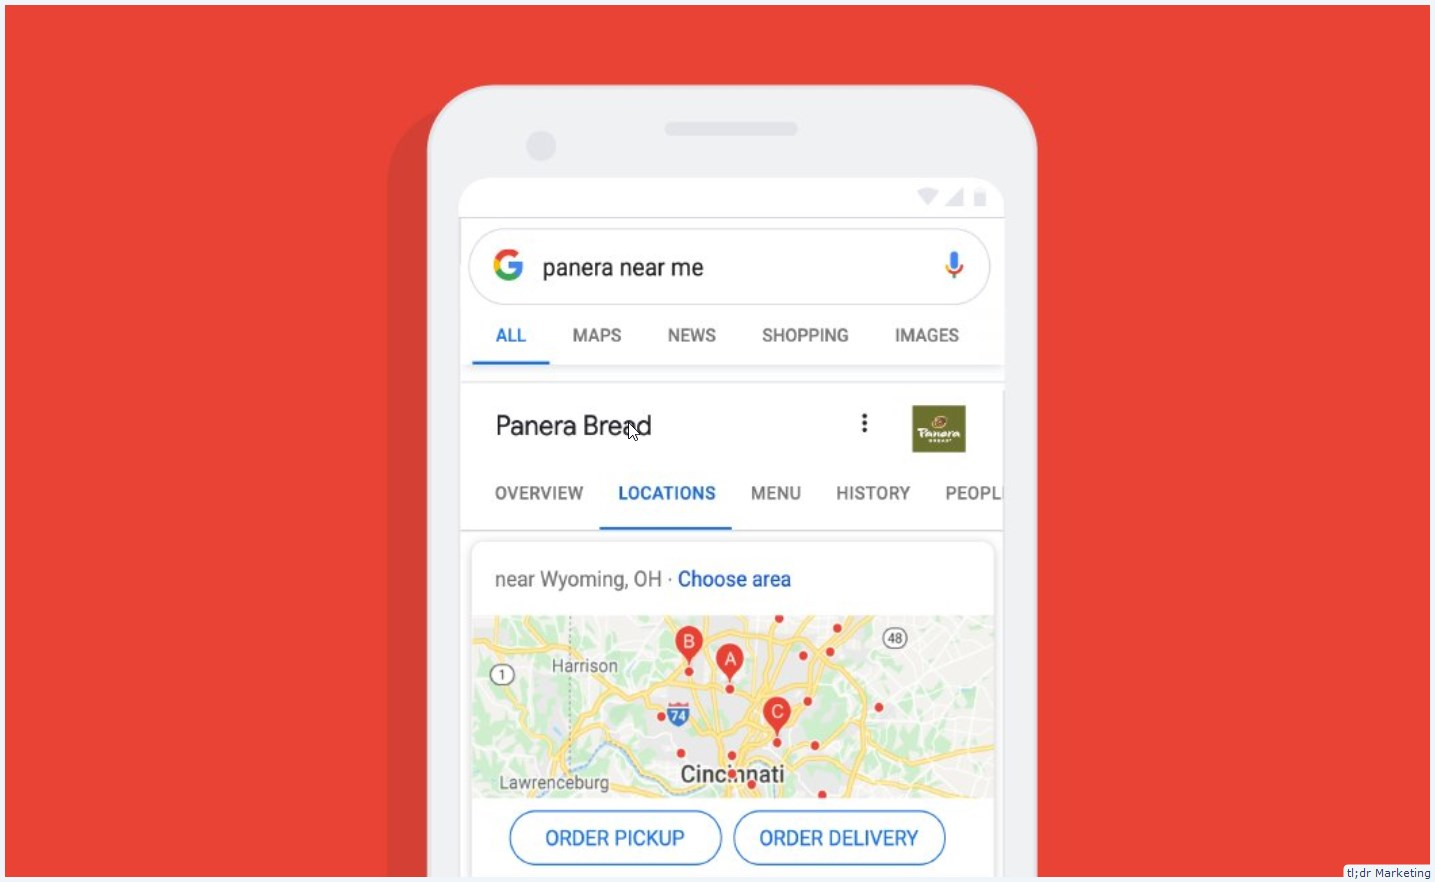 Panera's Off-Premise Delivery and Curbside Capabilities Now Available through Google Search, Maps, and Assistant